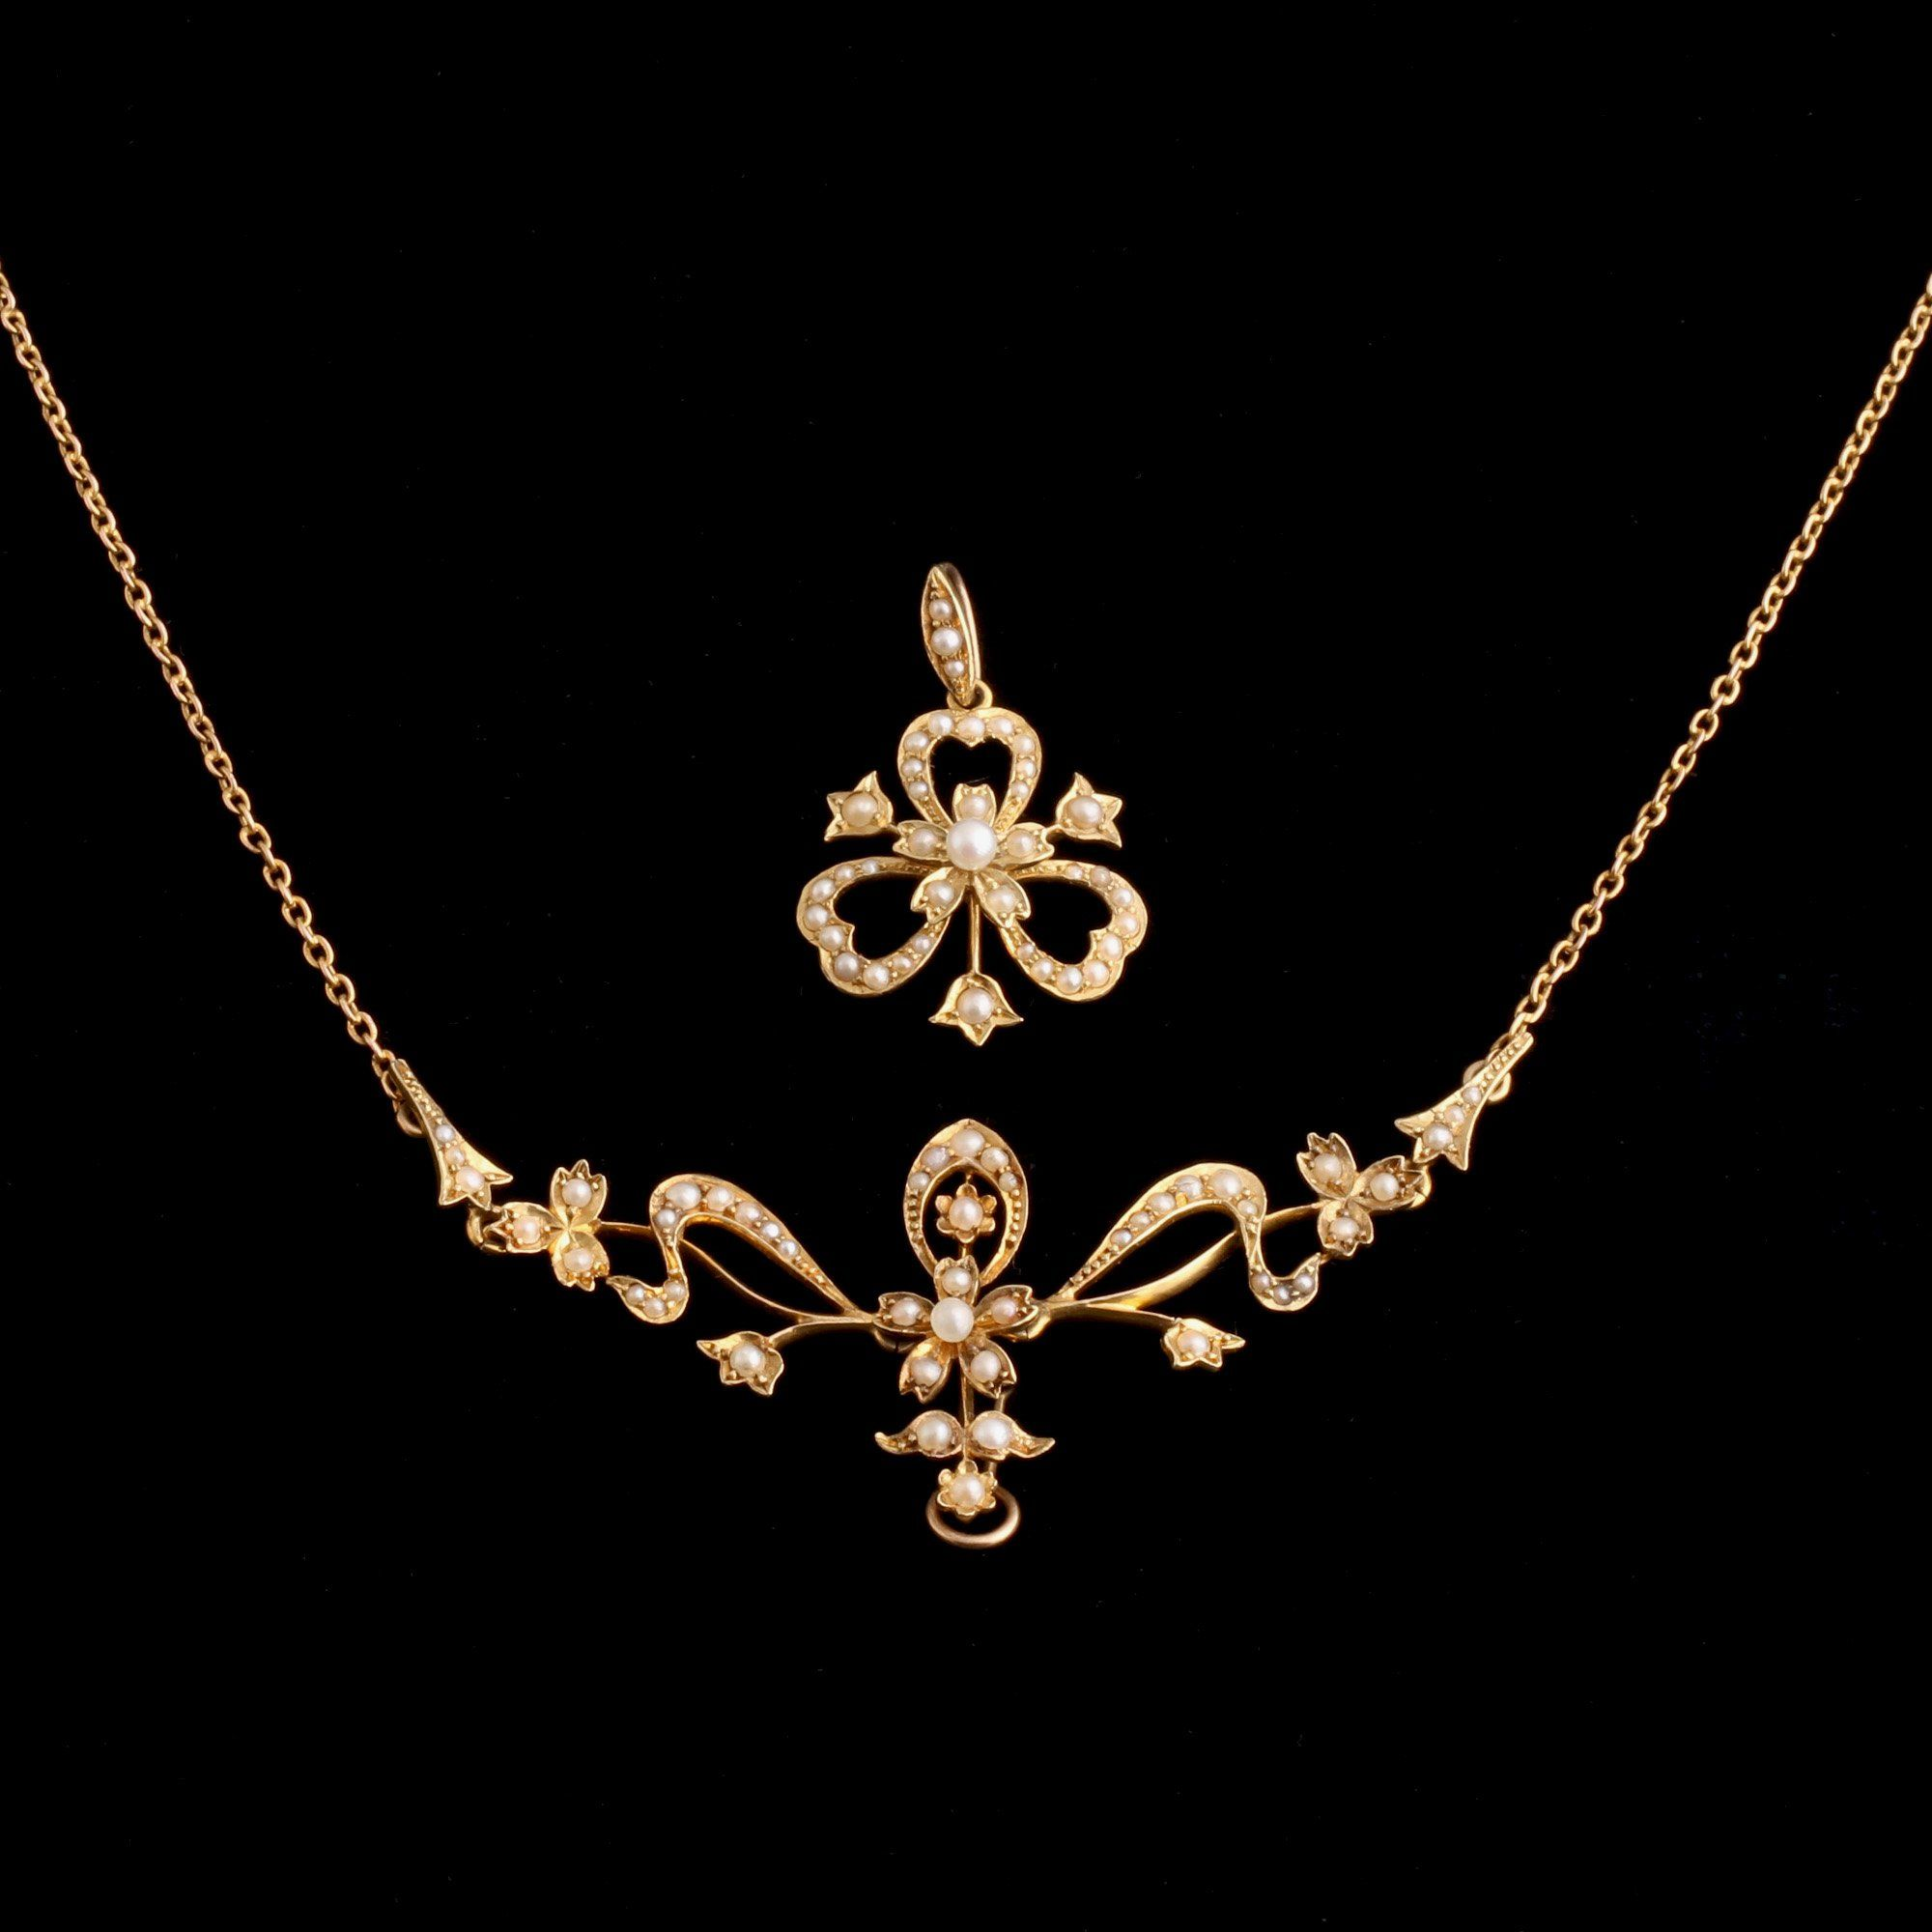 Edwardian Seed Pearl Clover Necklace